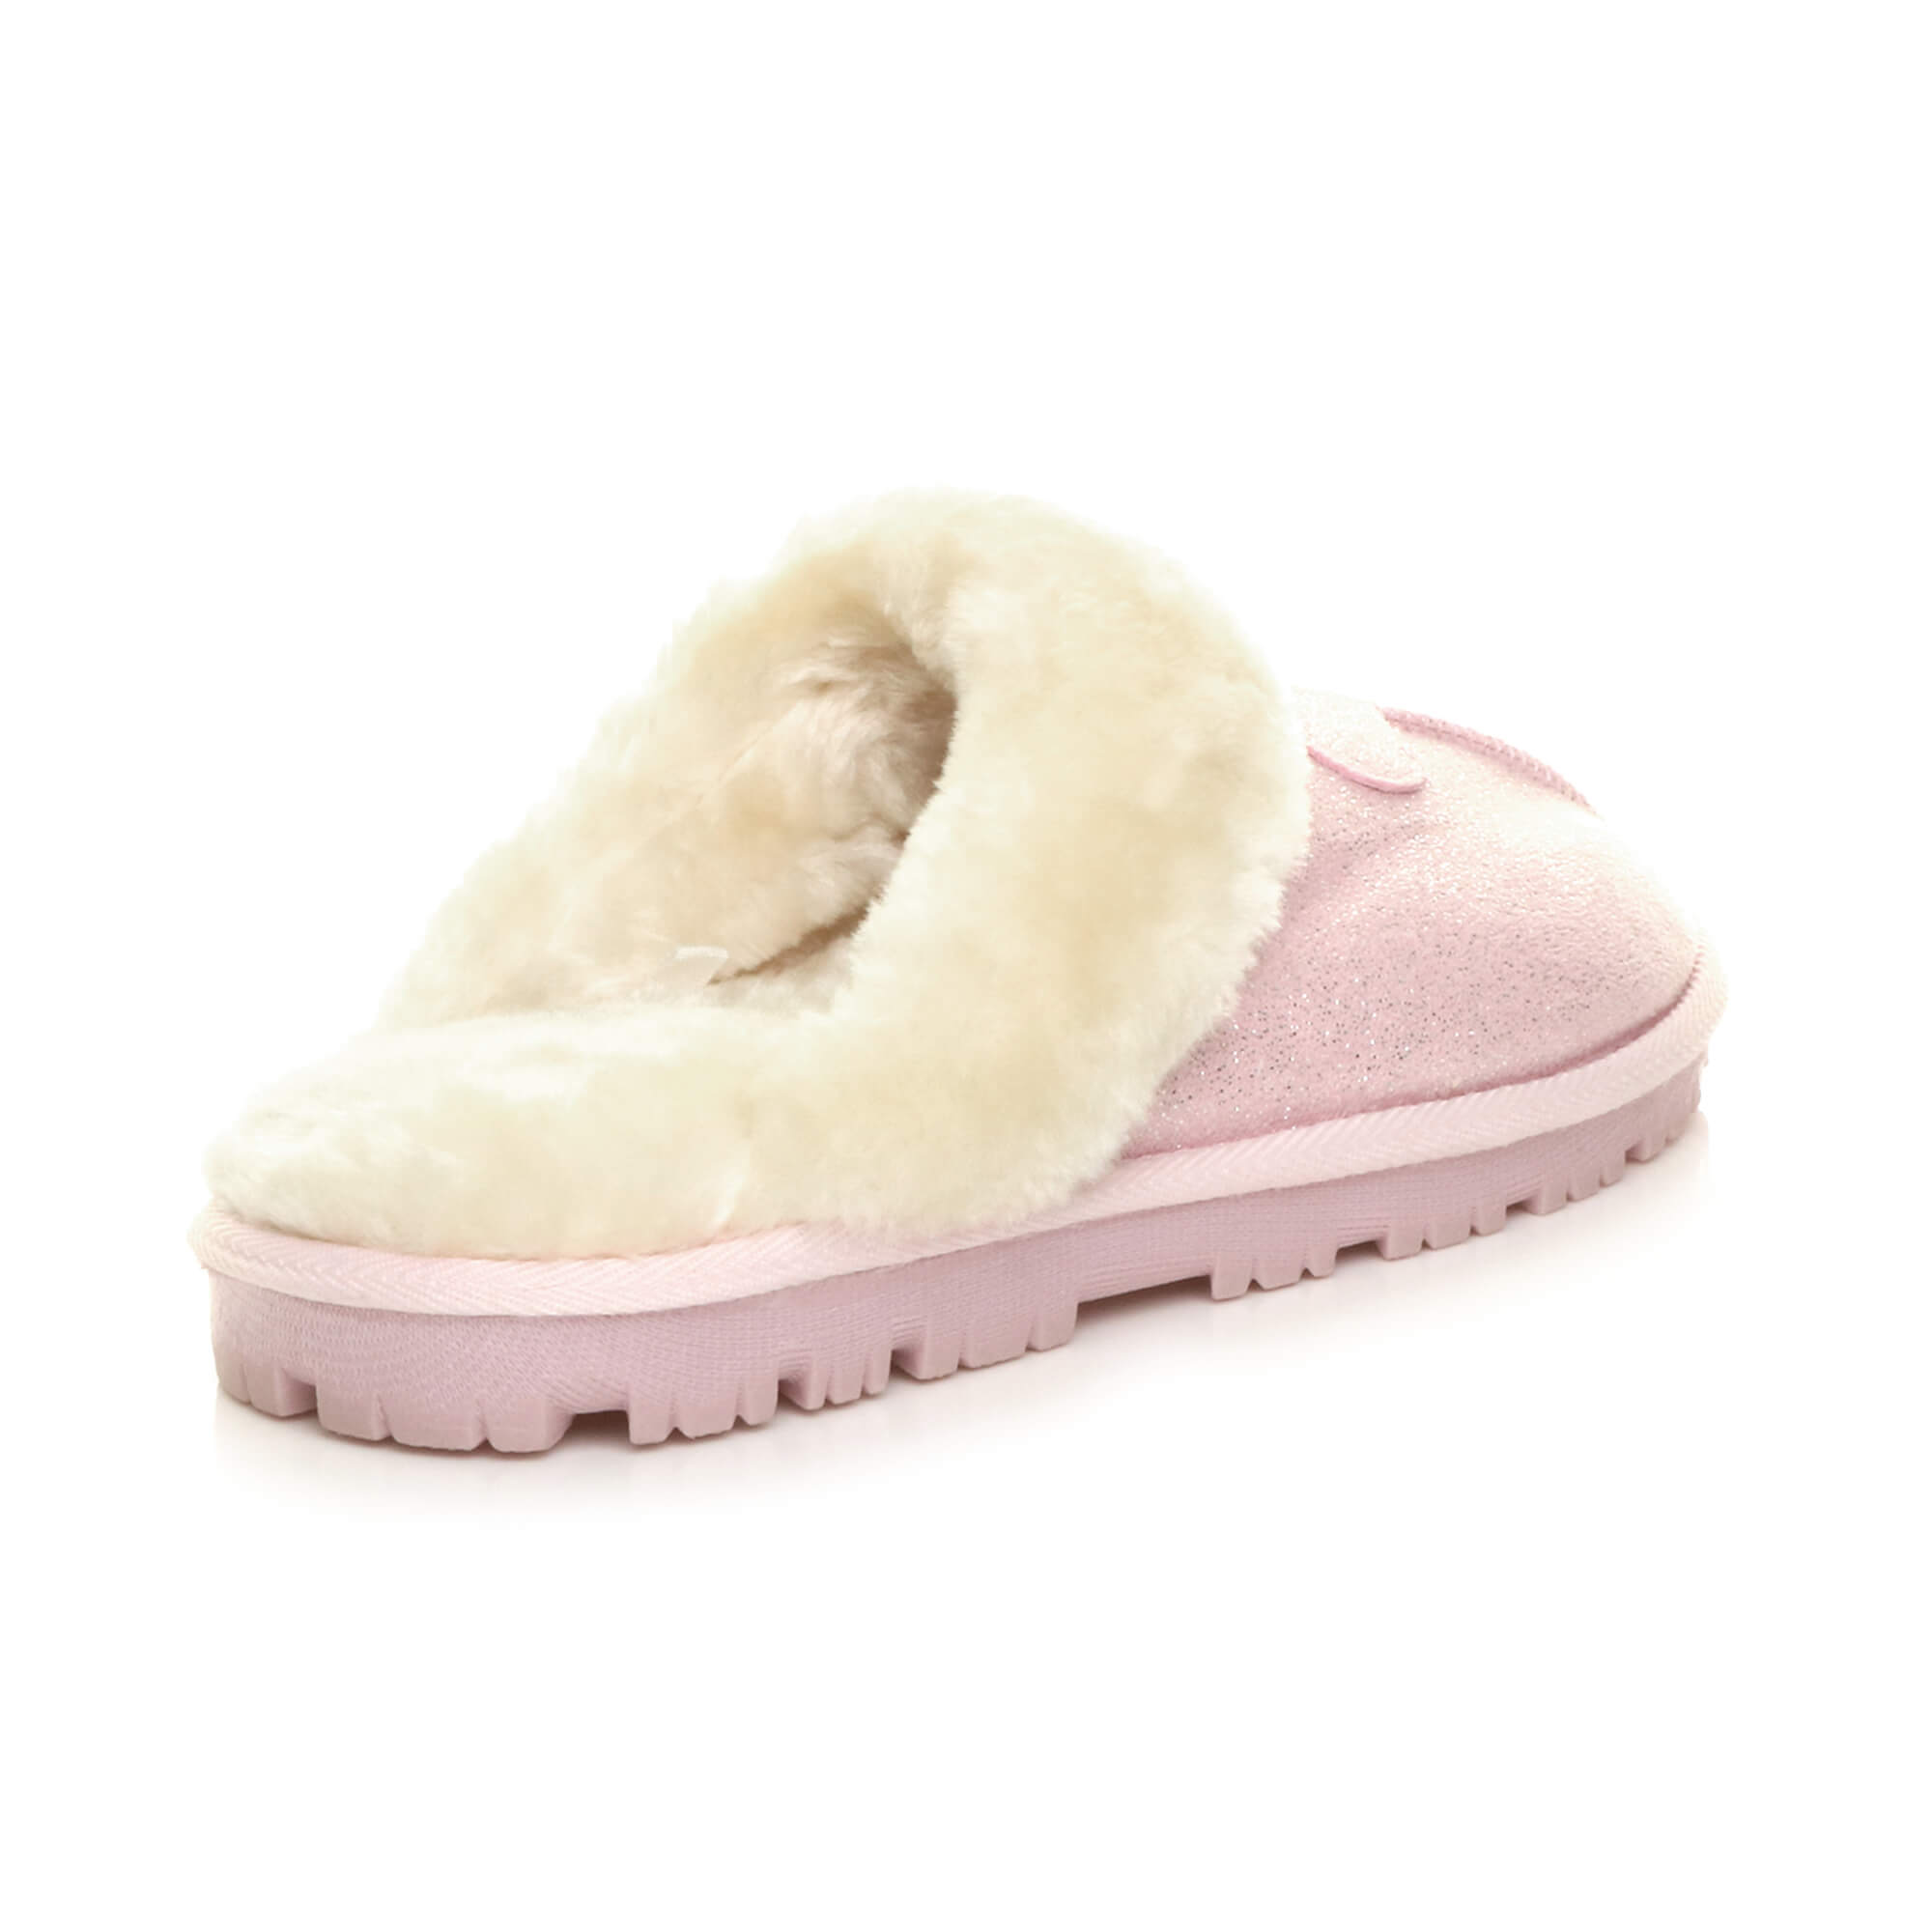 WOMENS-LADIES-FLAT-FUR-LINED-COMFORTABLE-WINTER-MULES-SLIPPERS-HOUSE-SHOES-SIZE thumbnail 82